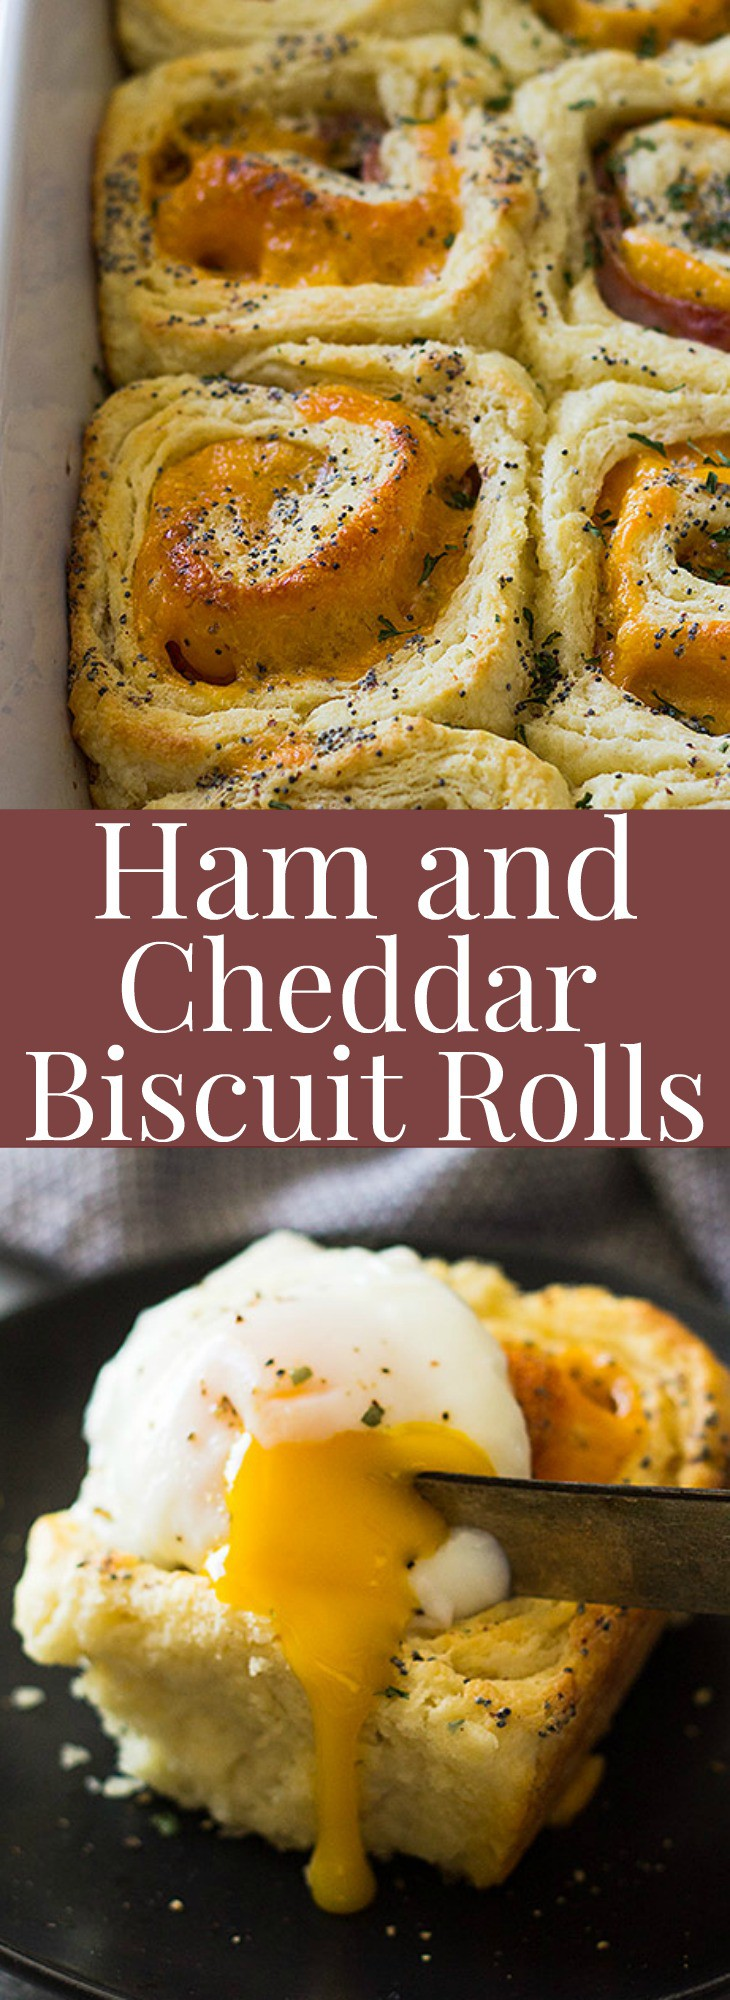 These Ham and Cheddar Biscuit Rolls are made with homemade biscuit dough, ham, cheddar and topped with a yummy glaze! | www.countrysidecravings.com